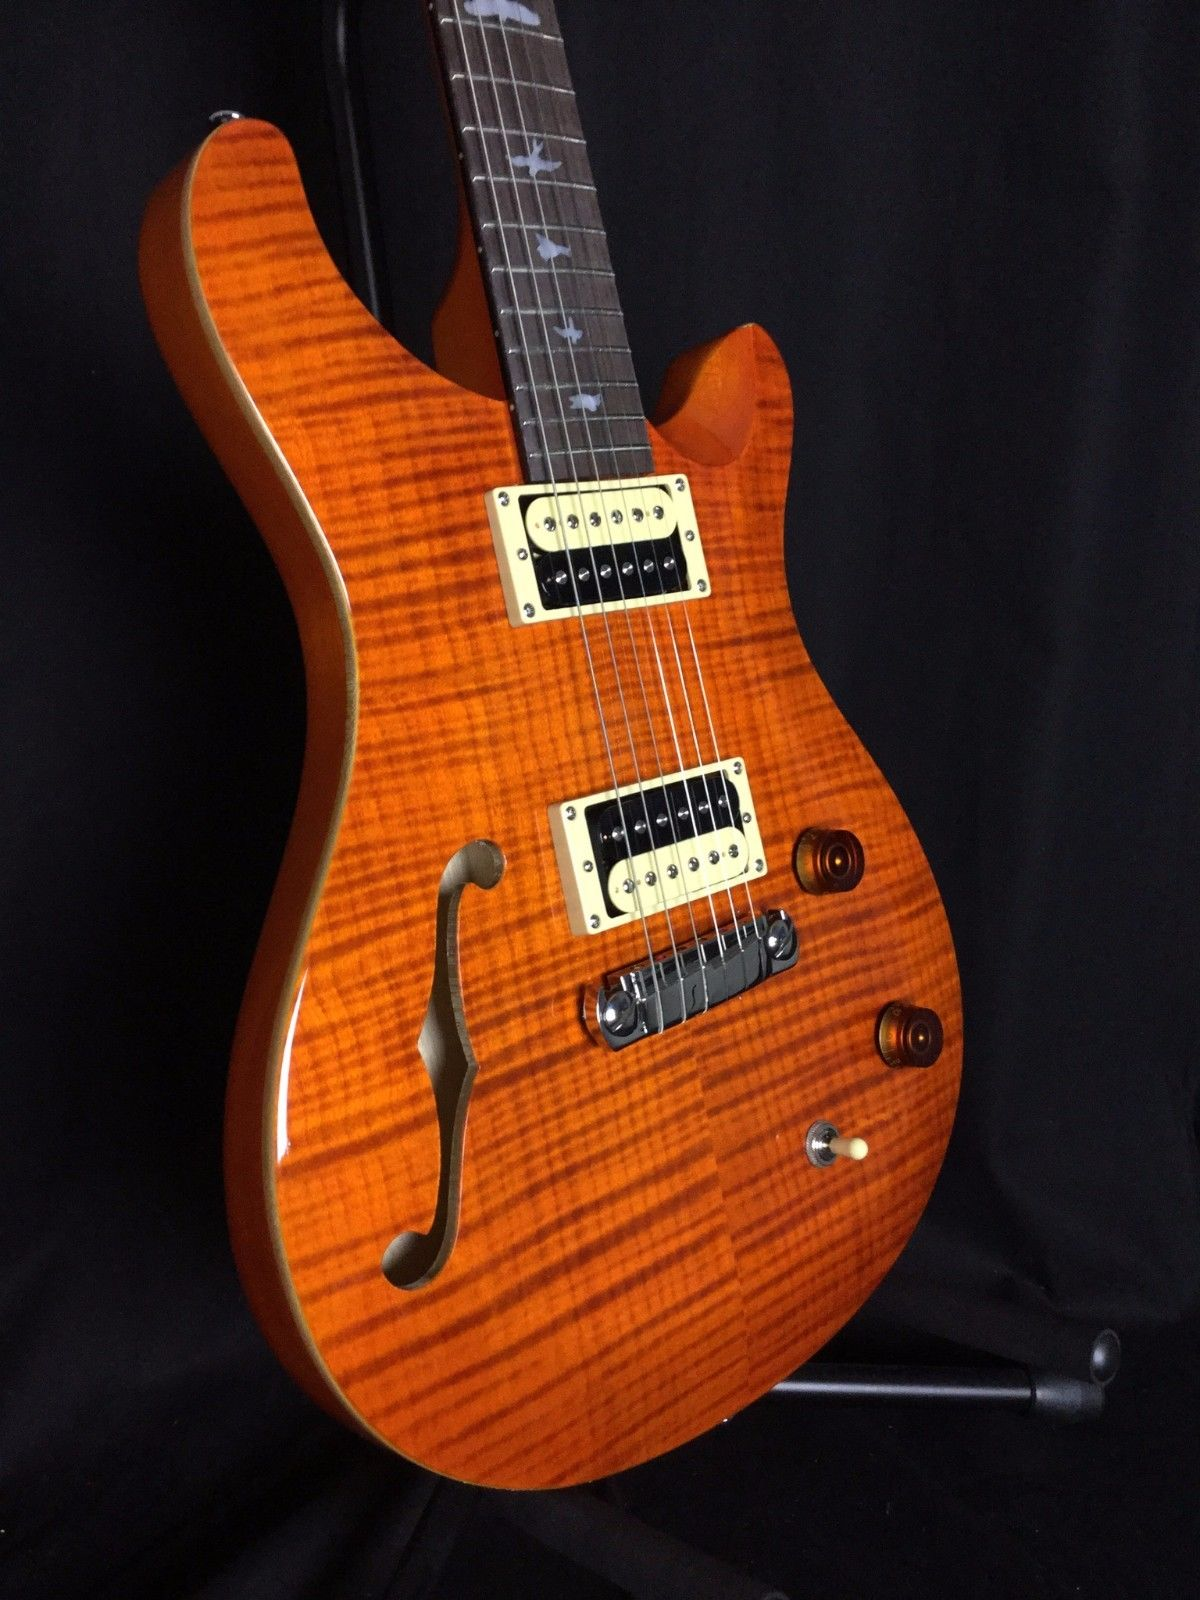 PRS SE Custom 22 Semi Hollow Orange W/gig bag (BRAND NEW / AUTH DEALER)